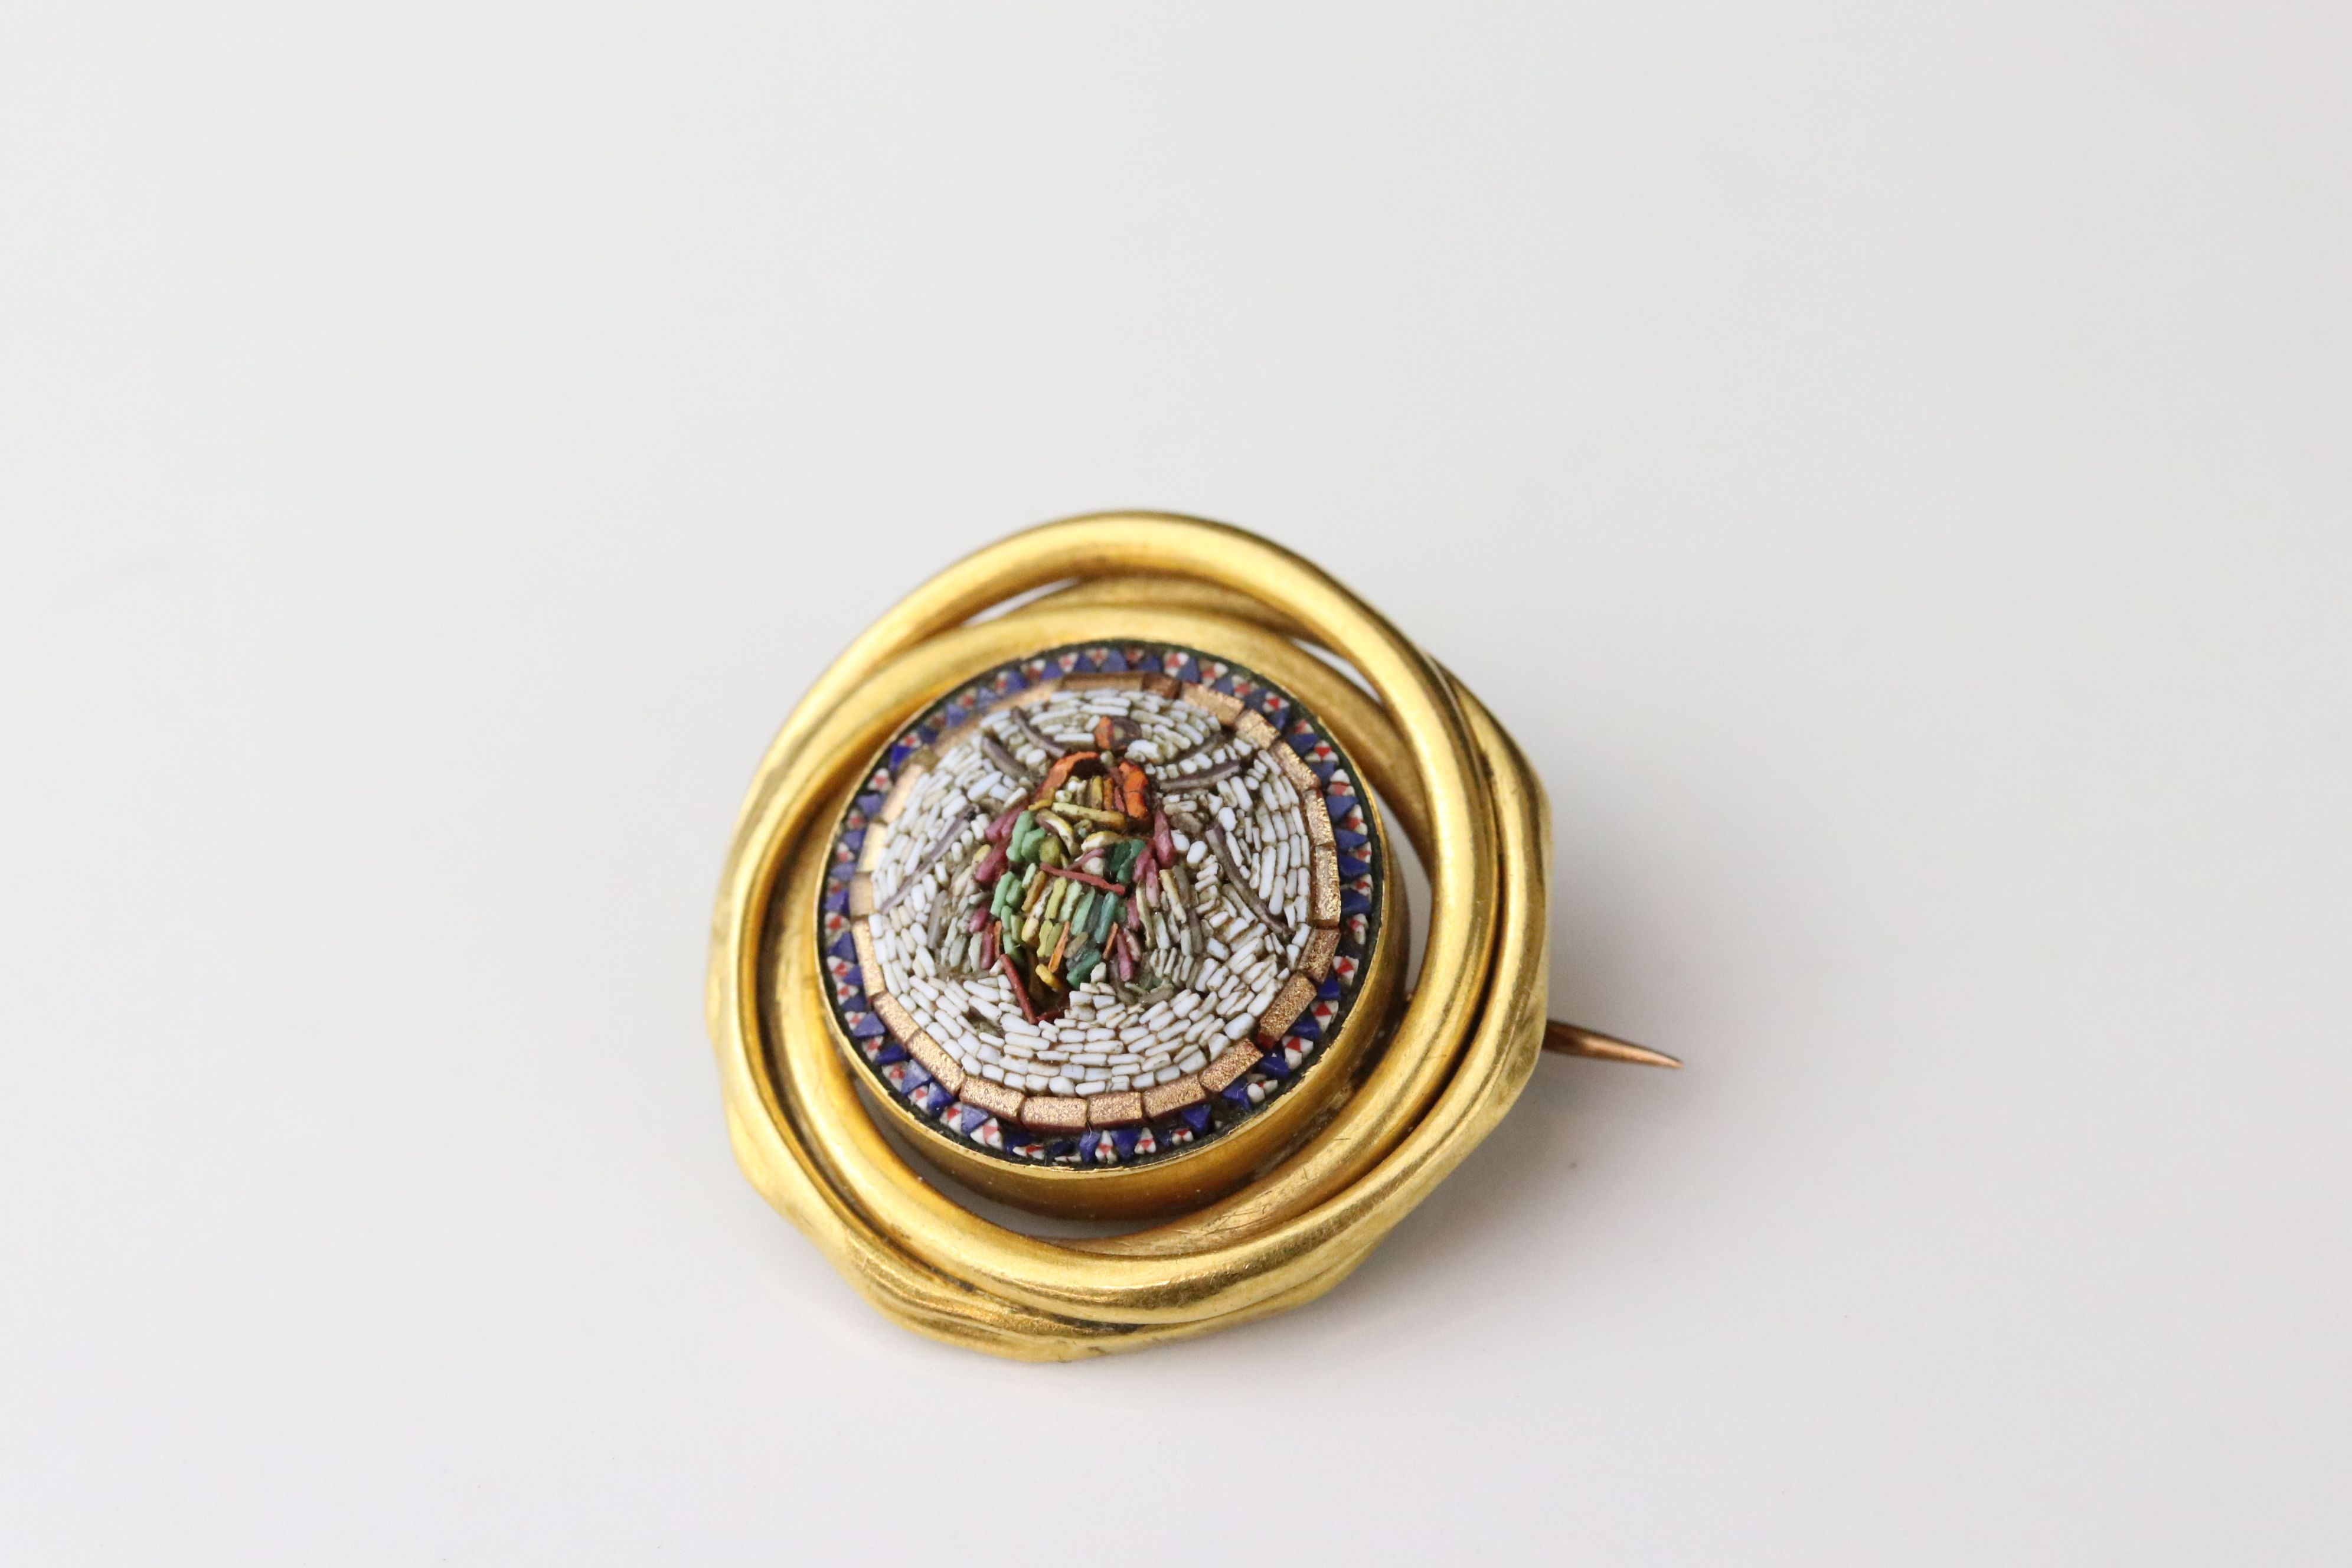 Victorian style micro-mosaic brooch depicting a fly, interwoven yellow metal surround, hinged pin